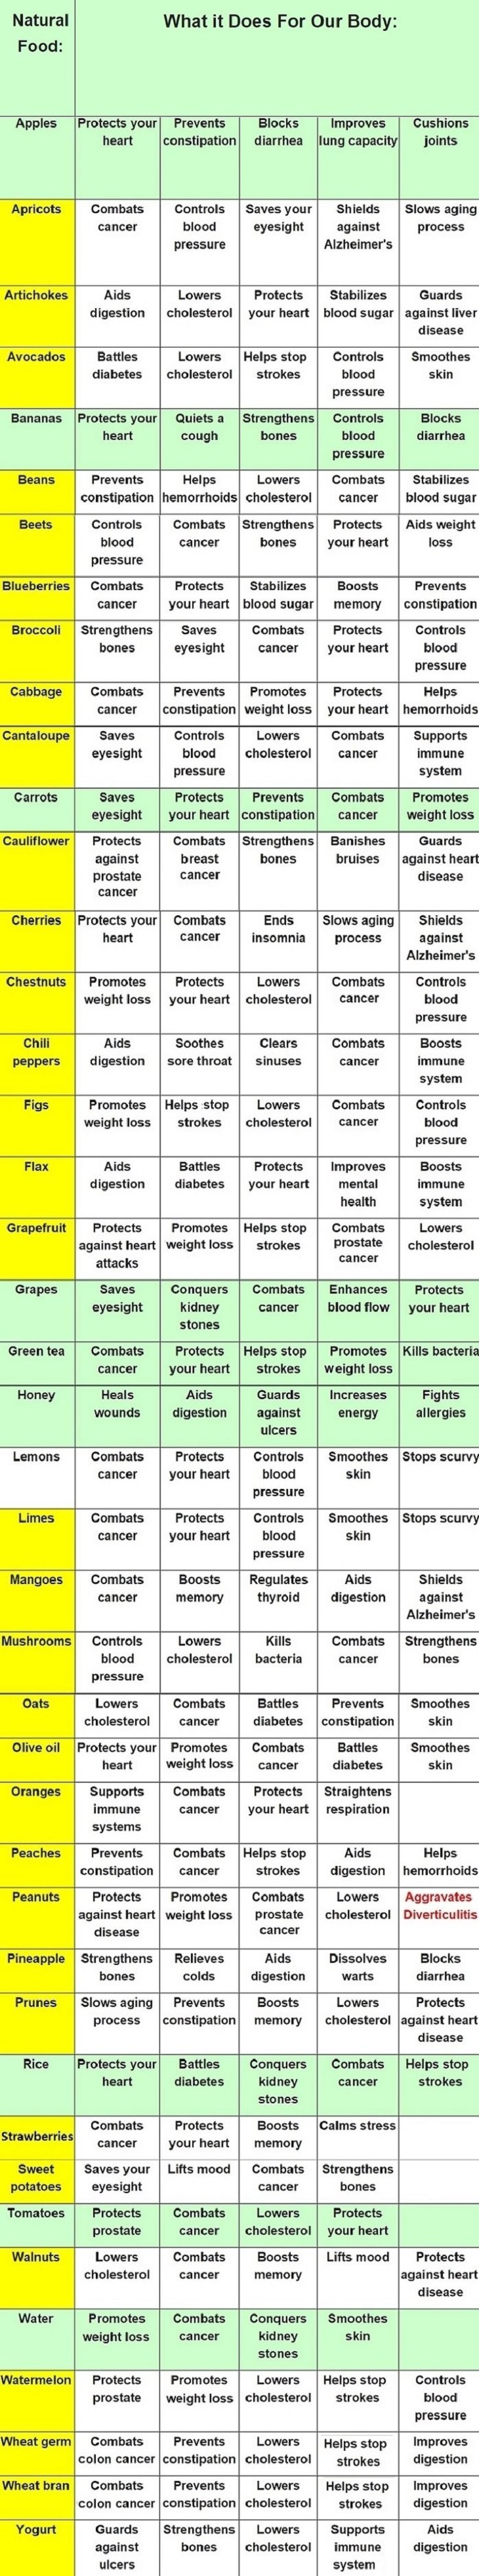 food guide, health